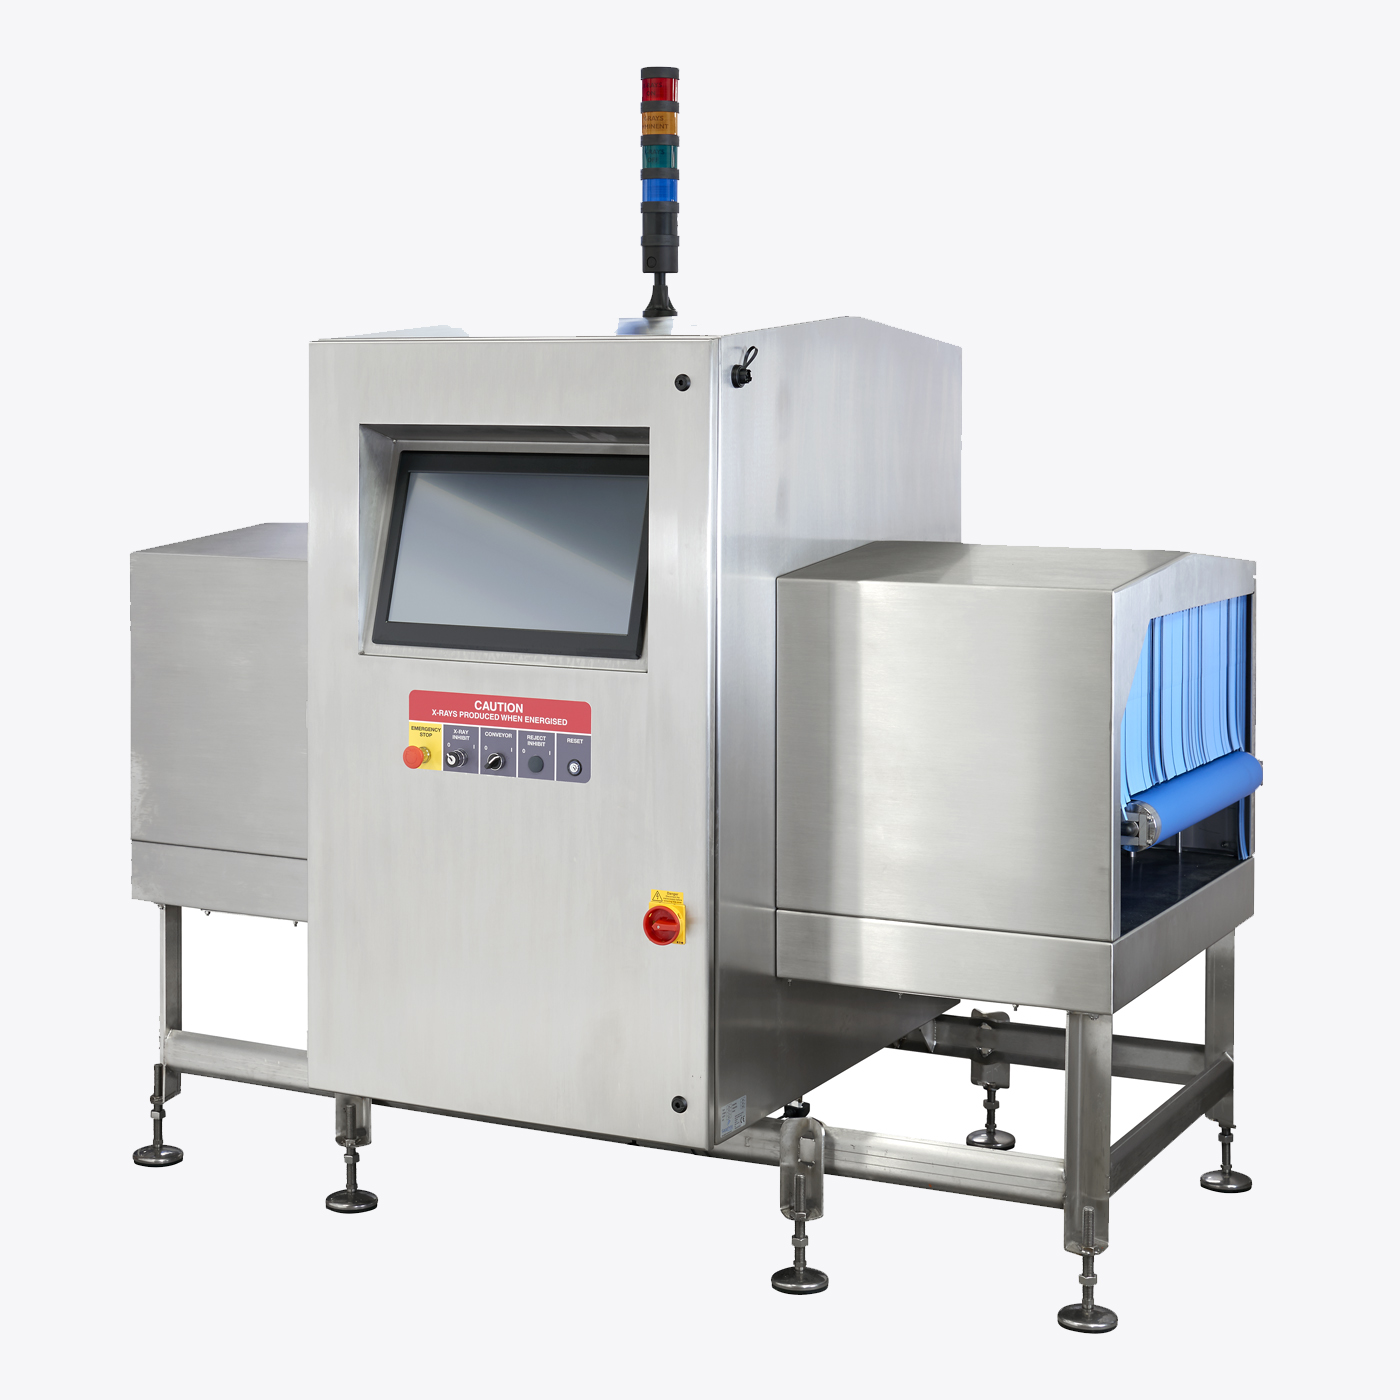 G40 x-ray inspection system